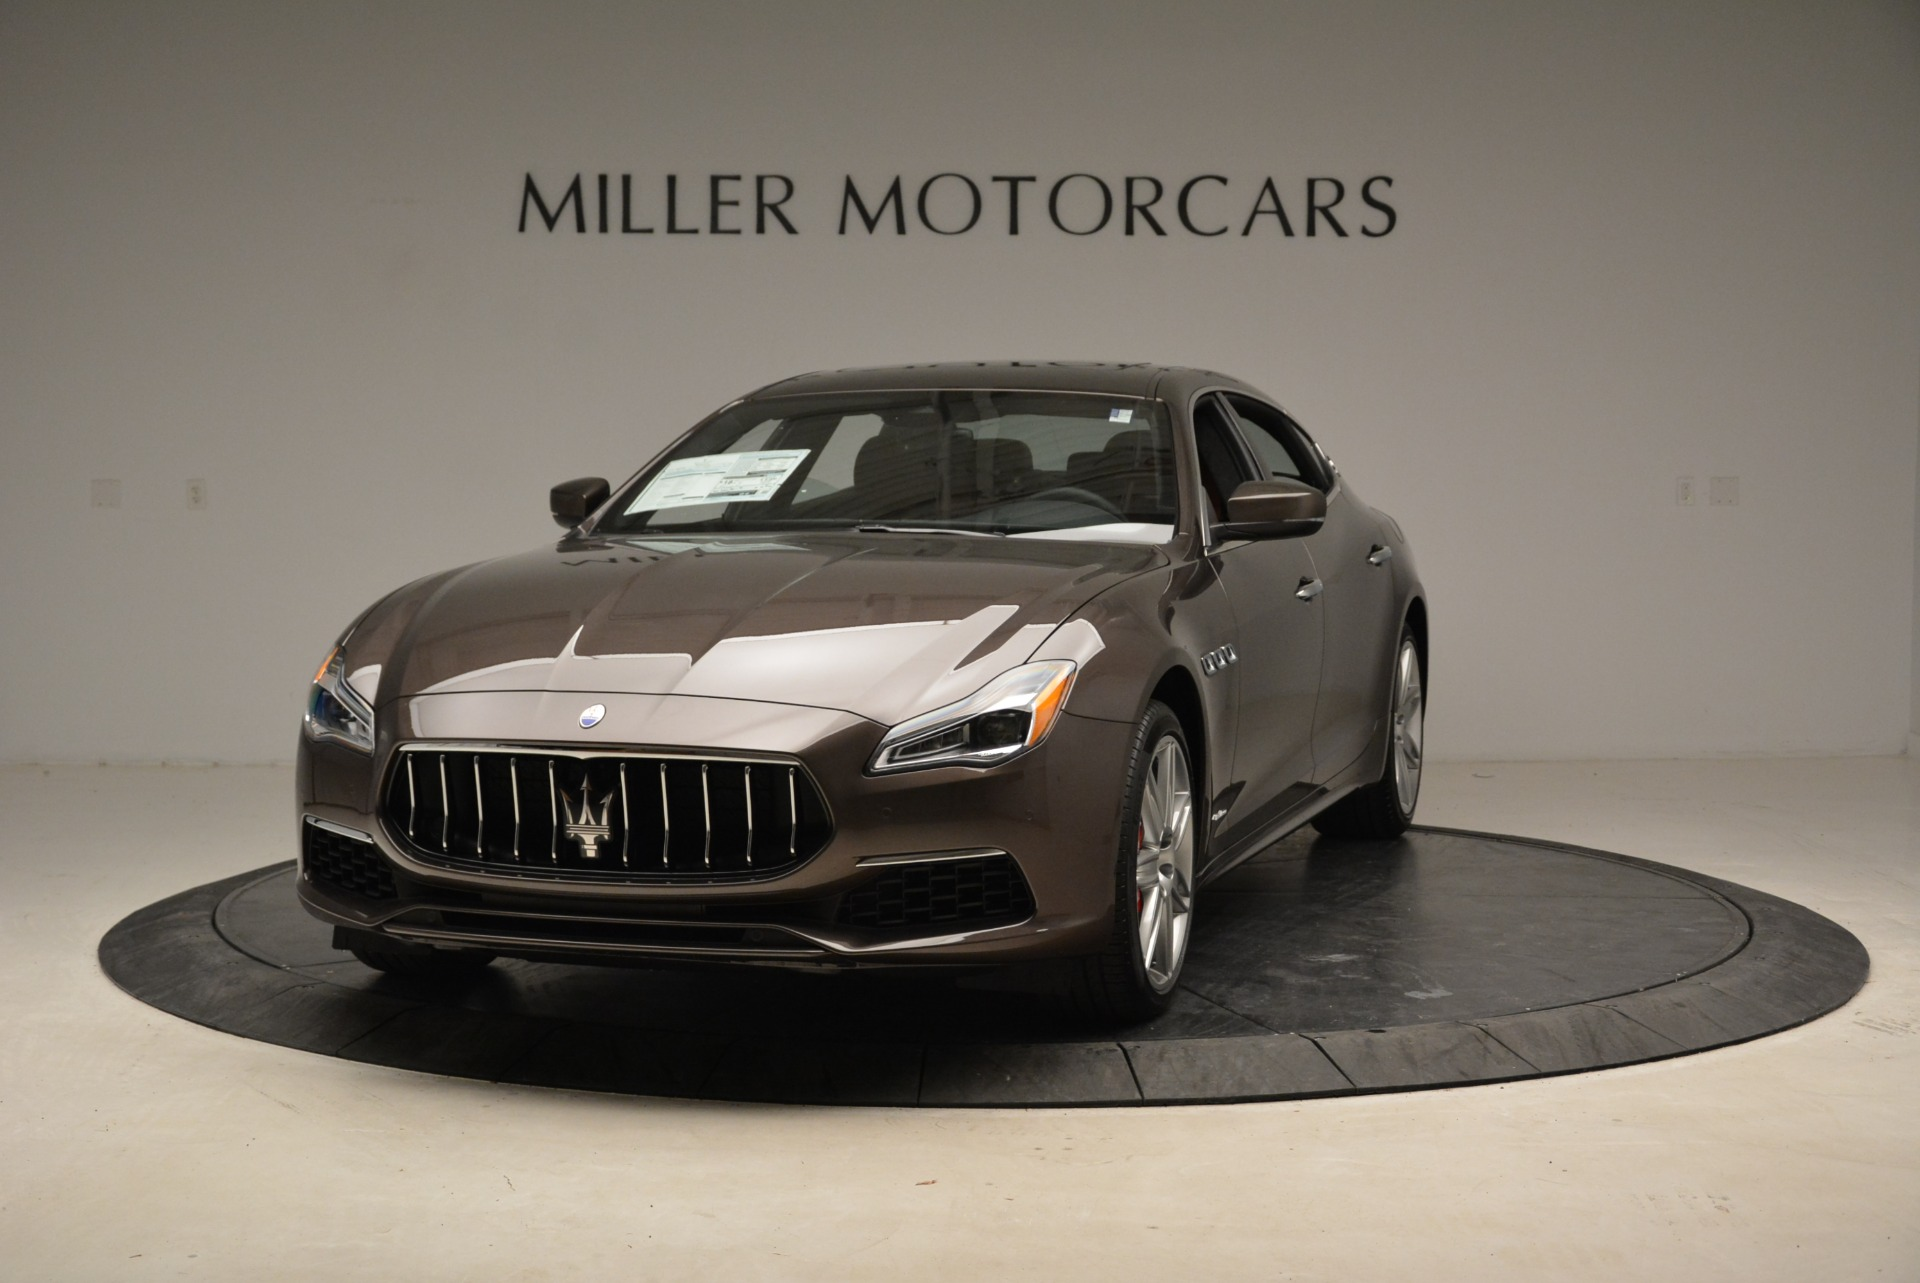 New 2018 Maserati Quattroporte S Q4 GranLusso For Sale In Greenwich, CT 1926_main